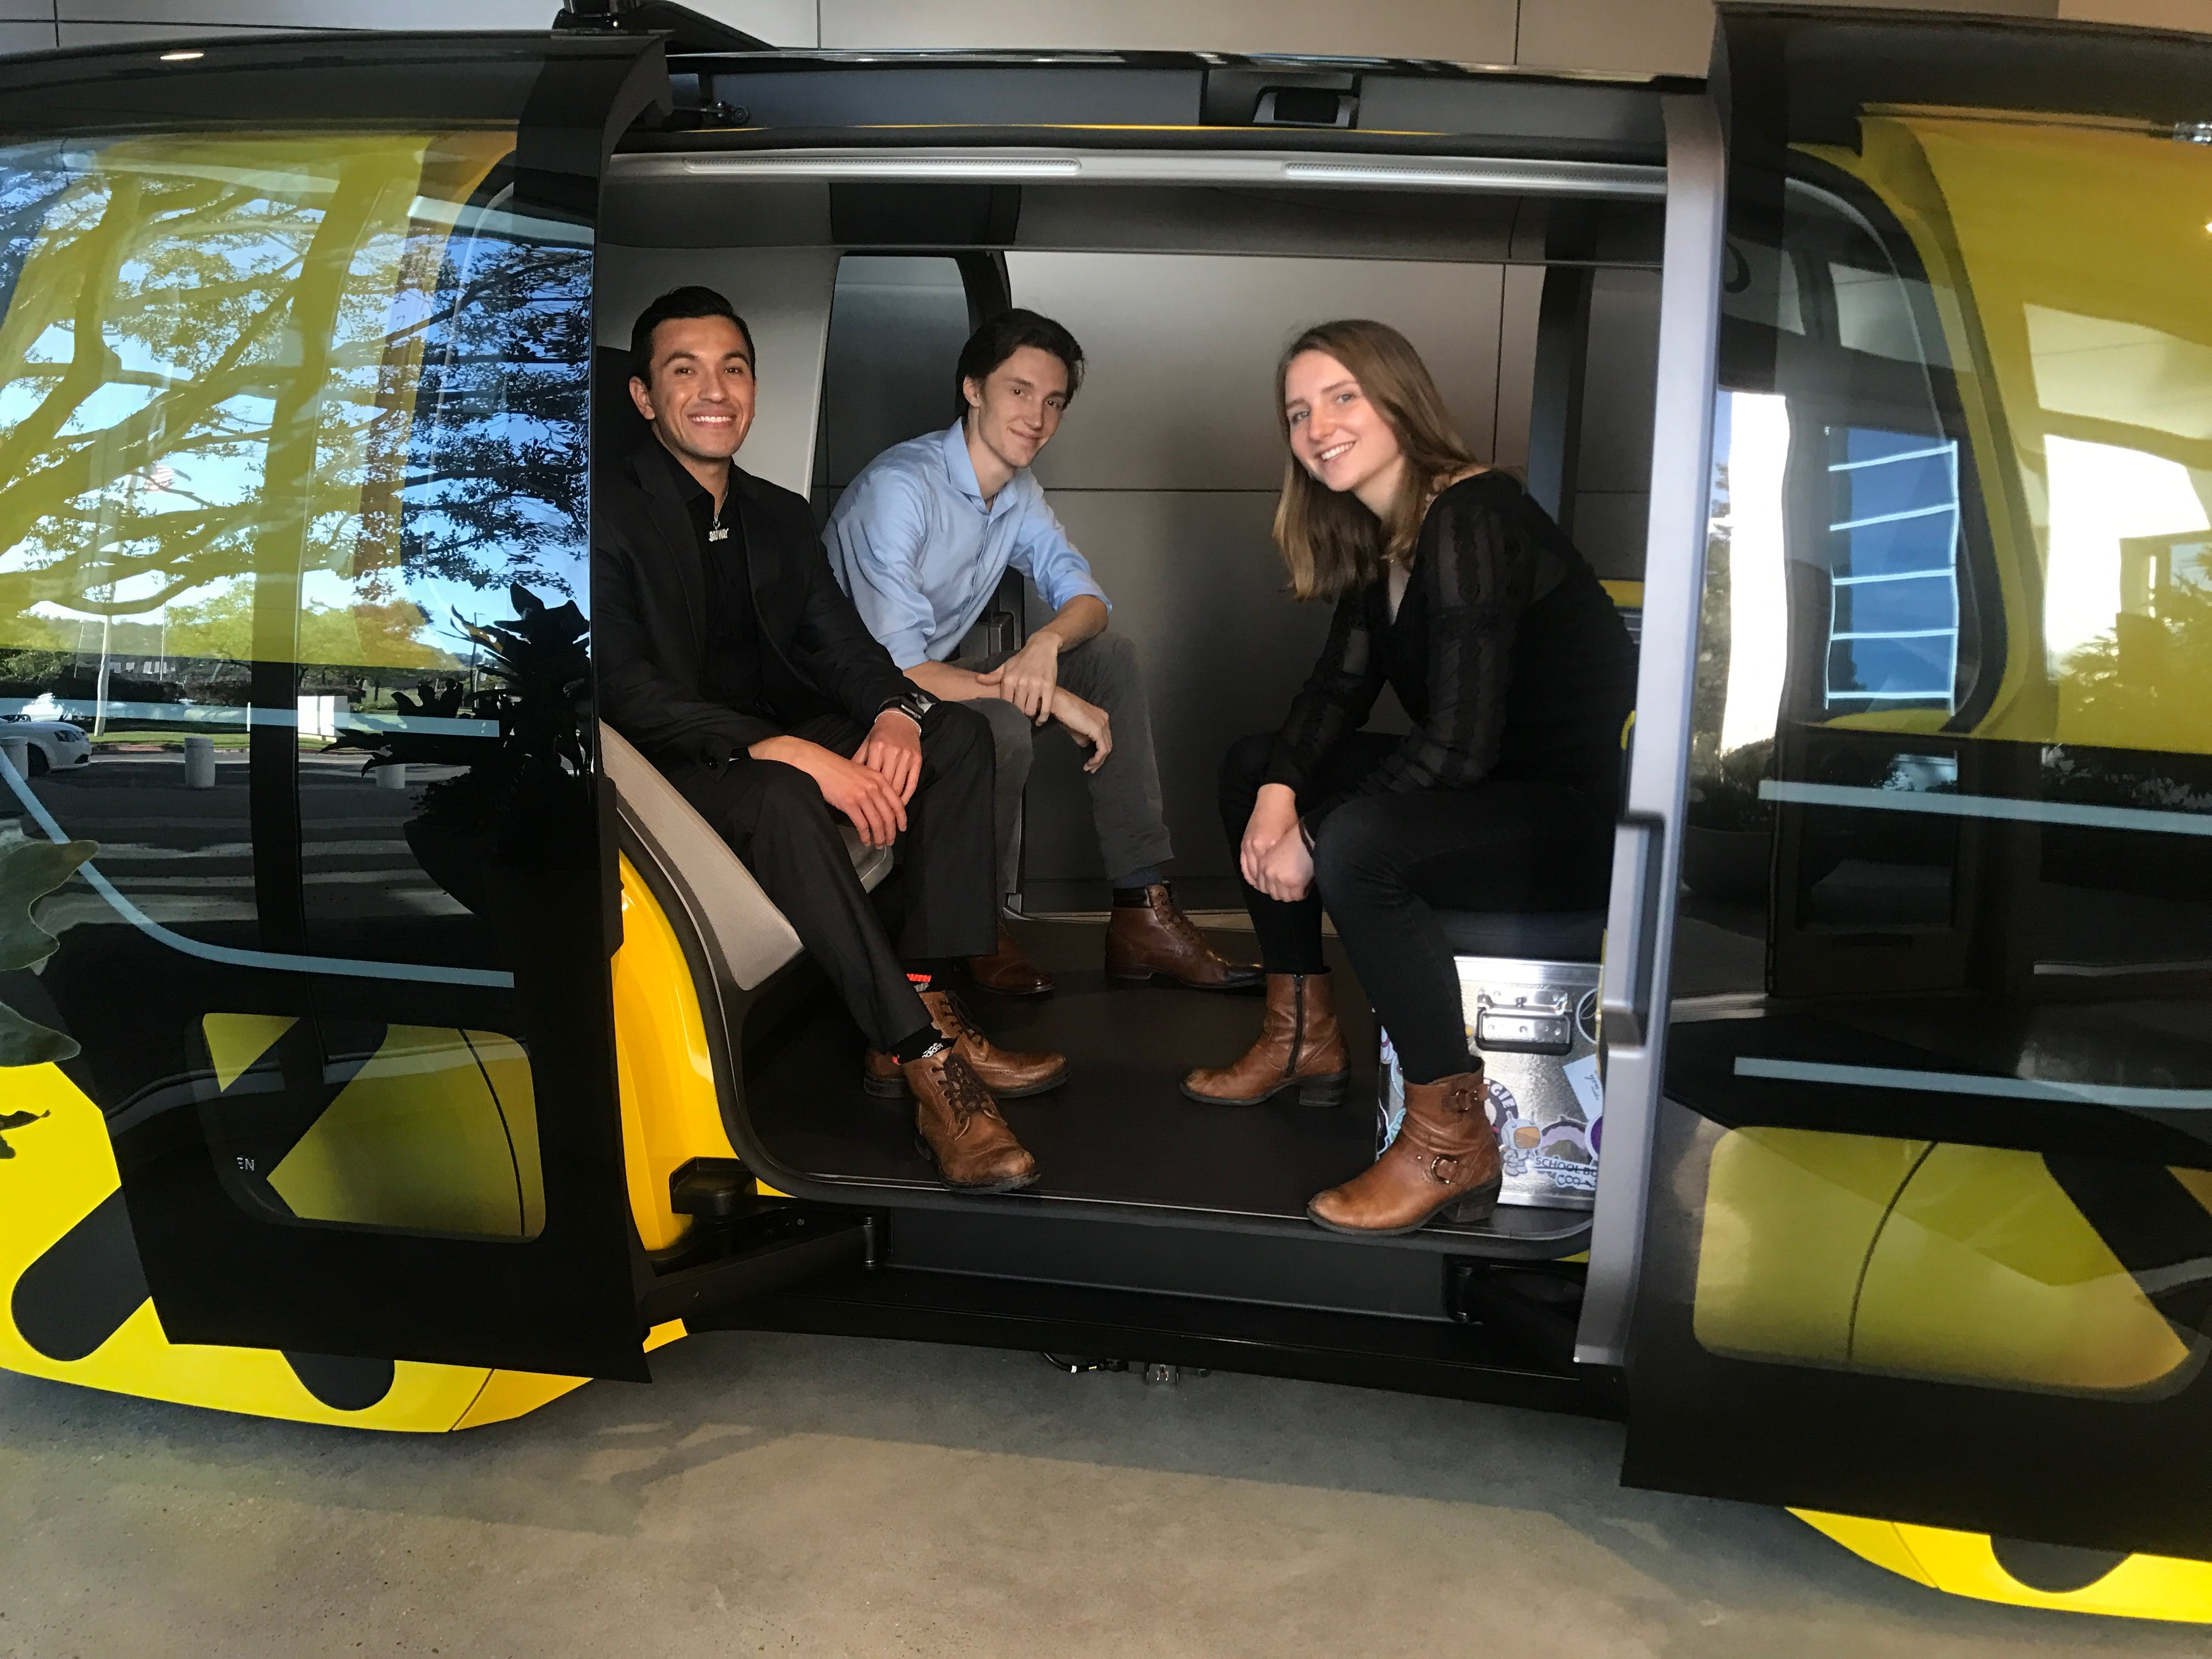 Three students sitting in yellow train with open door